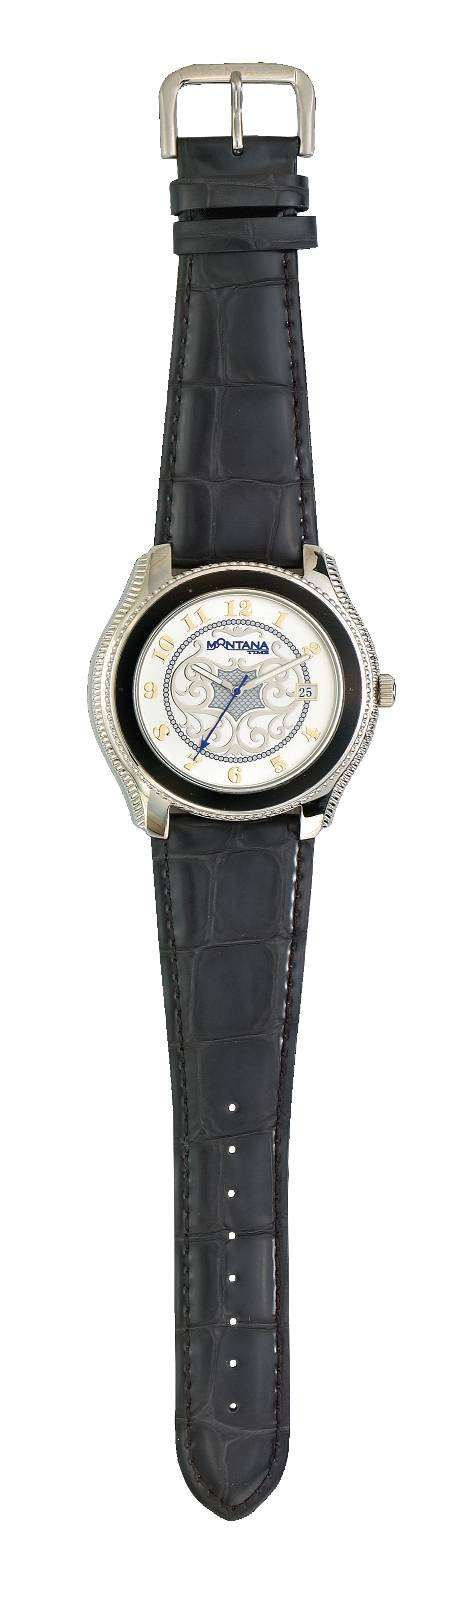 Montana Silversmiths Classic Western Filigree Watch with Crocodile Leather Band